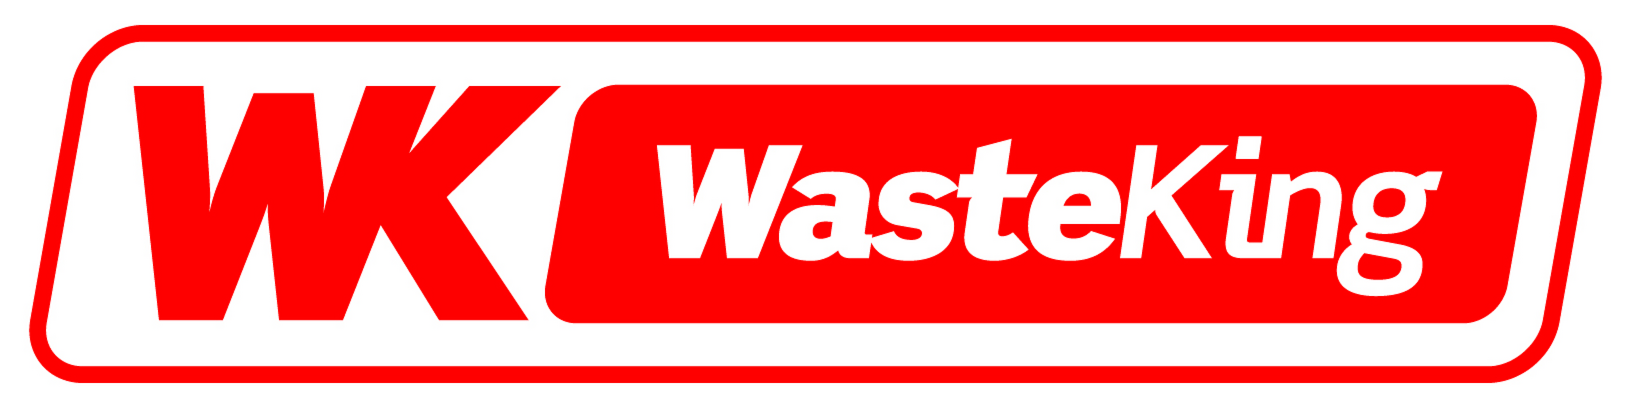 Waste King Limited